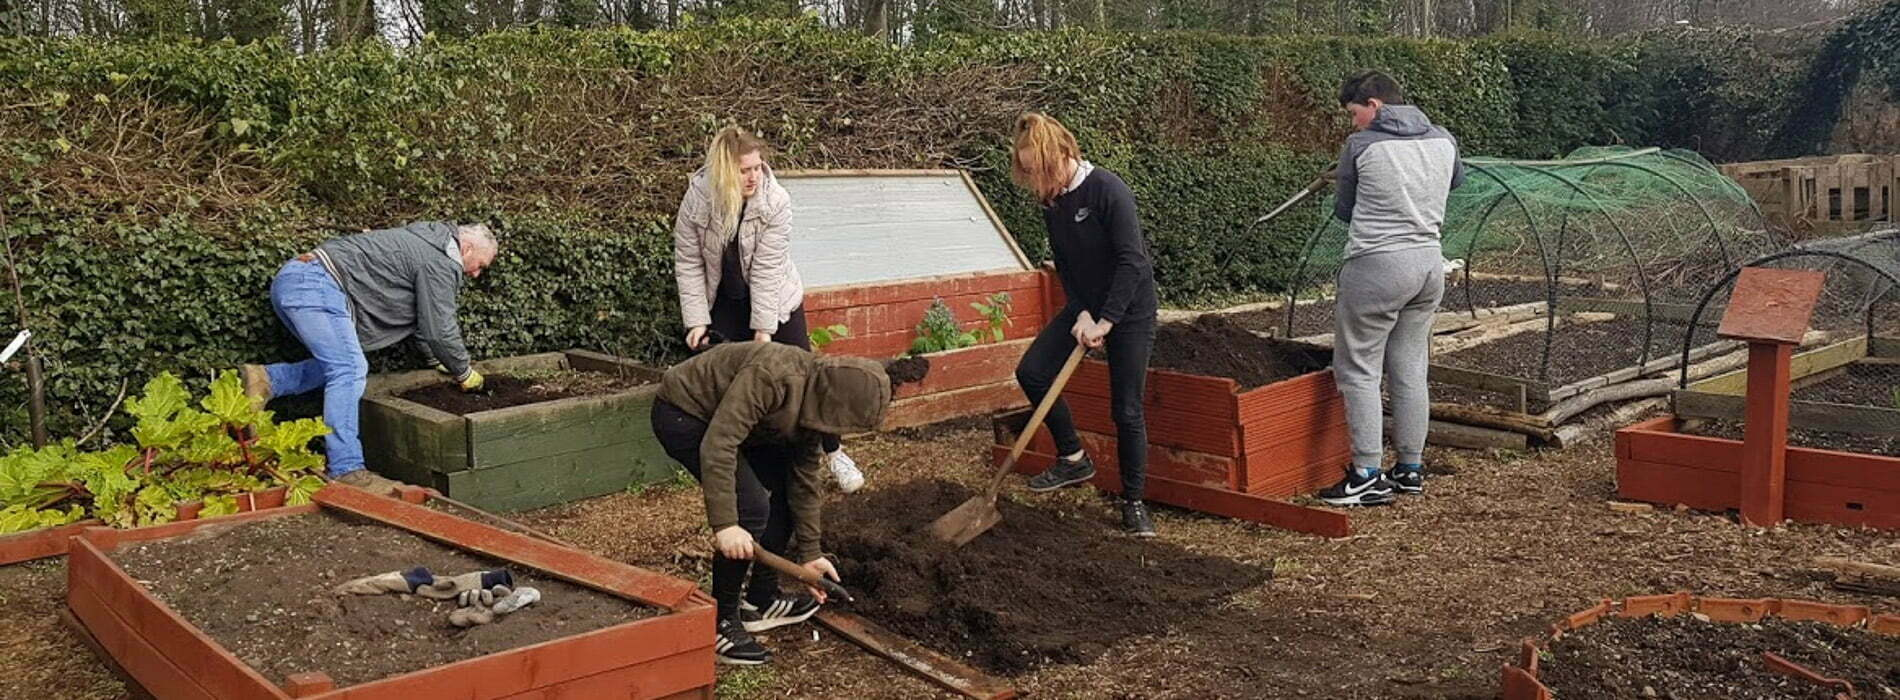 Young people digging in an allotment